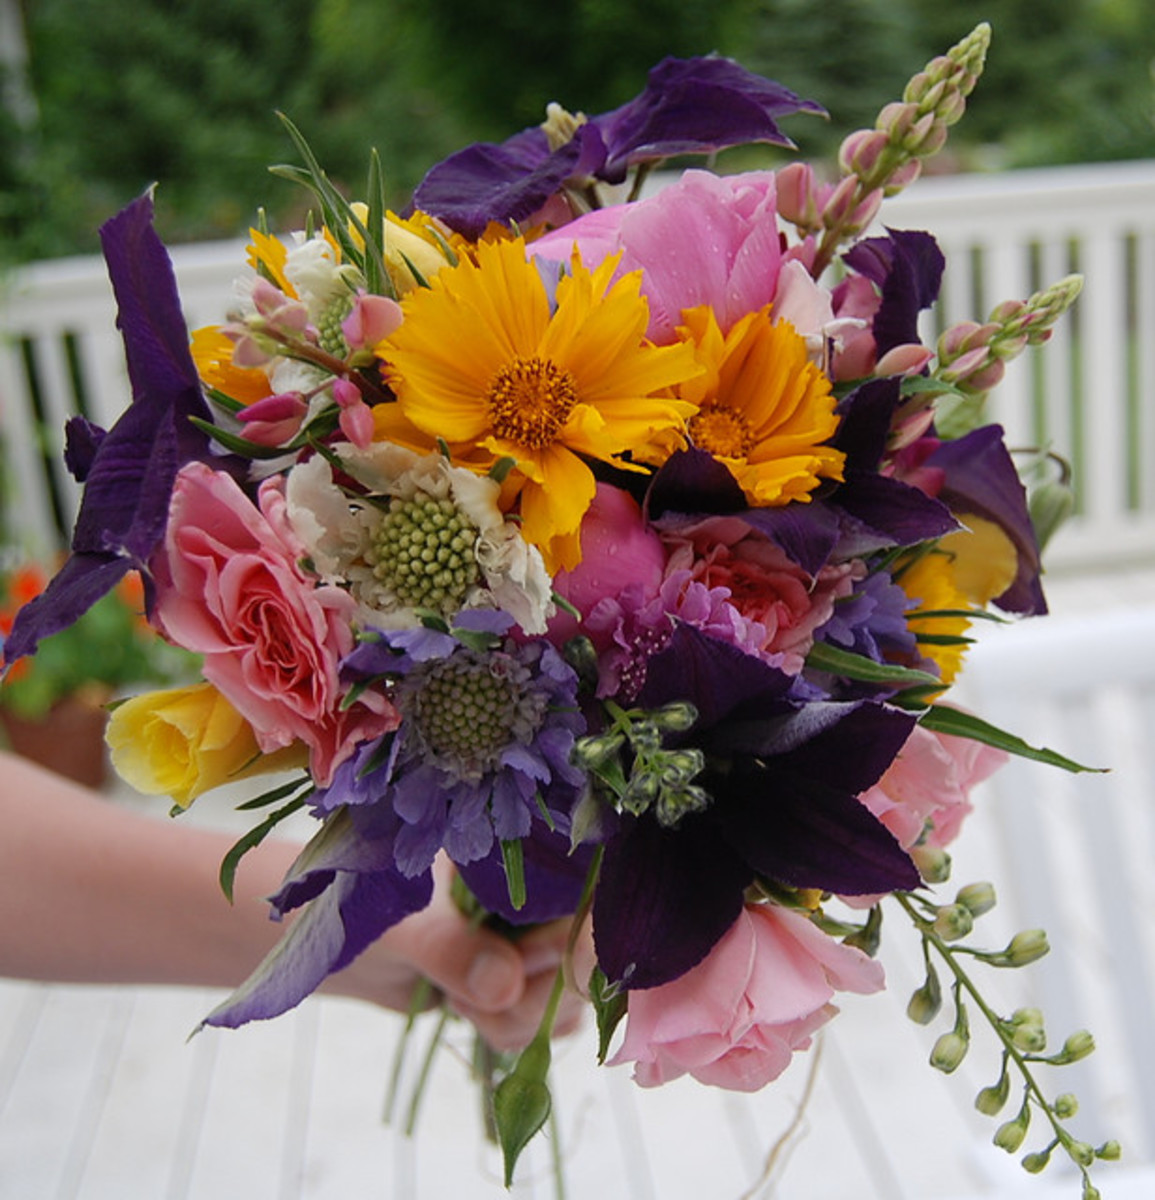 How To Keep Cut Flowers Fresh Last Longer And Homemade Recipe For Cut Flower Preservative